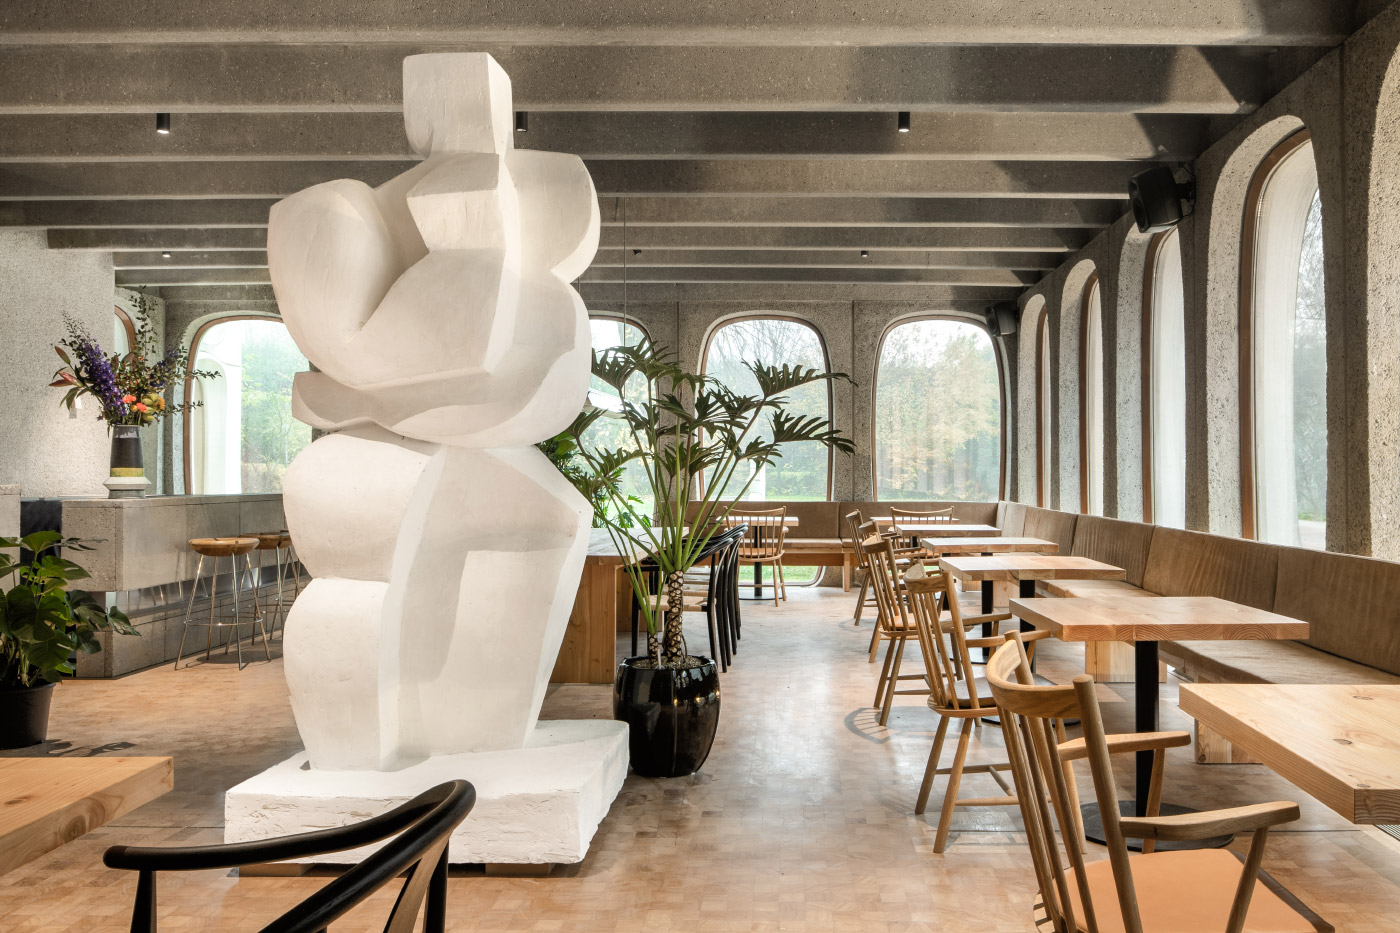 A white statue in a cafe area